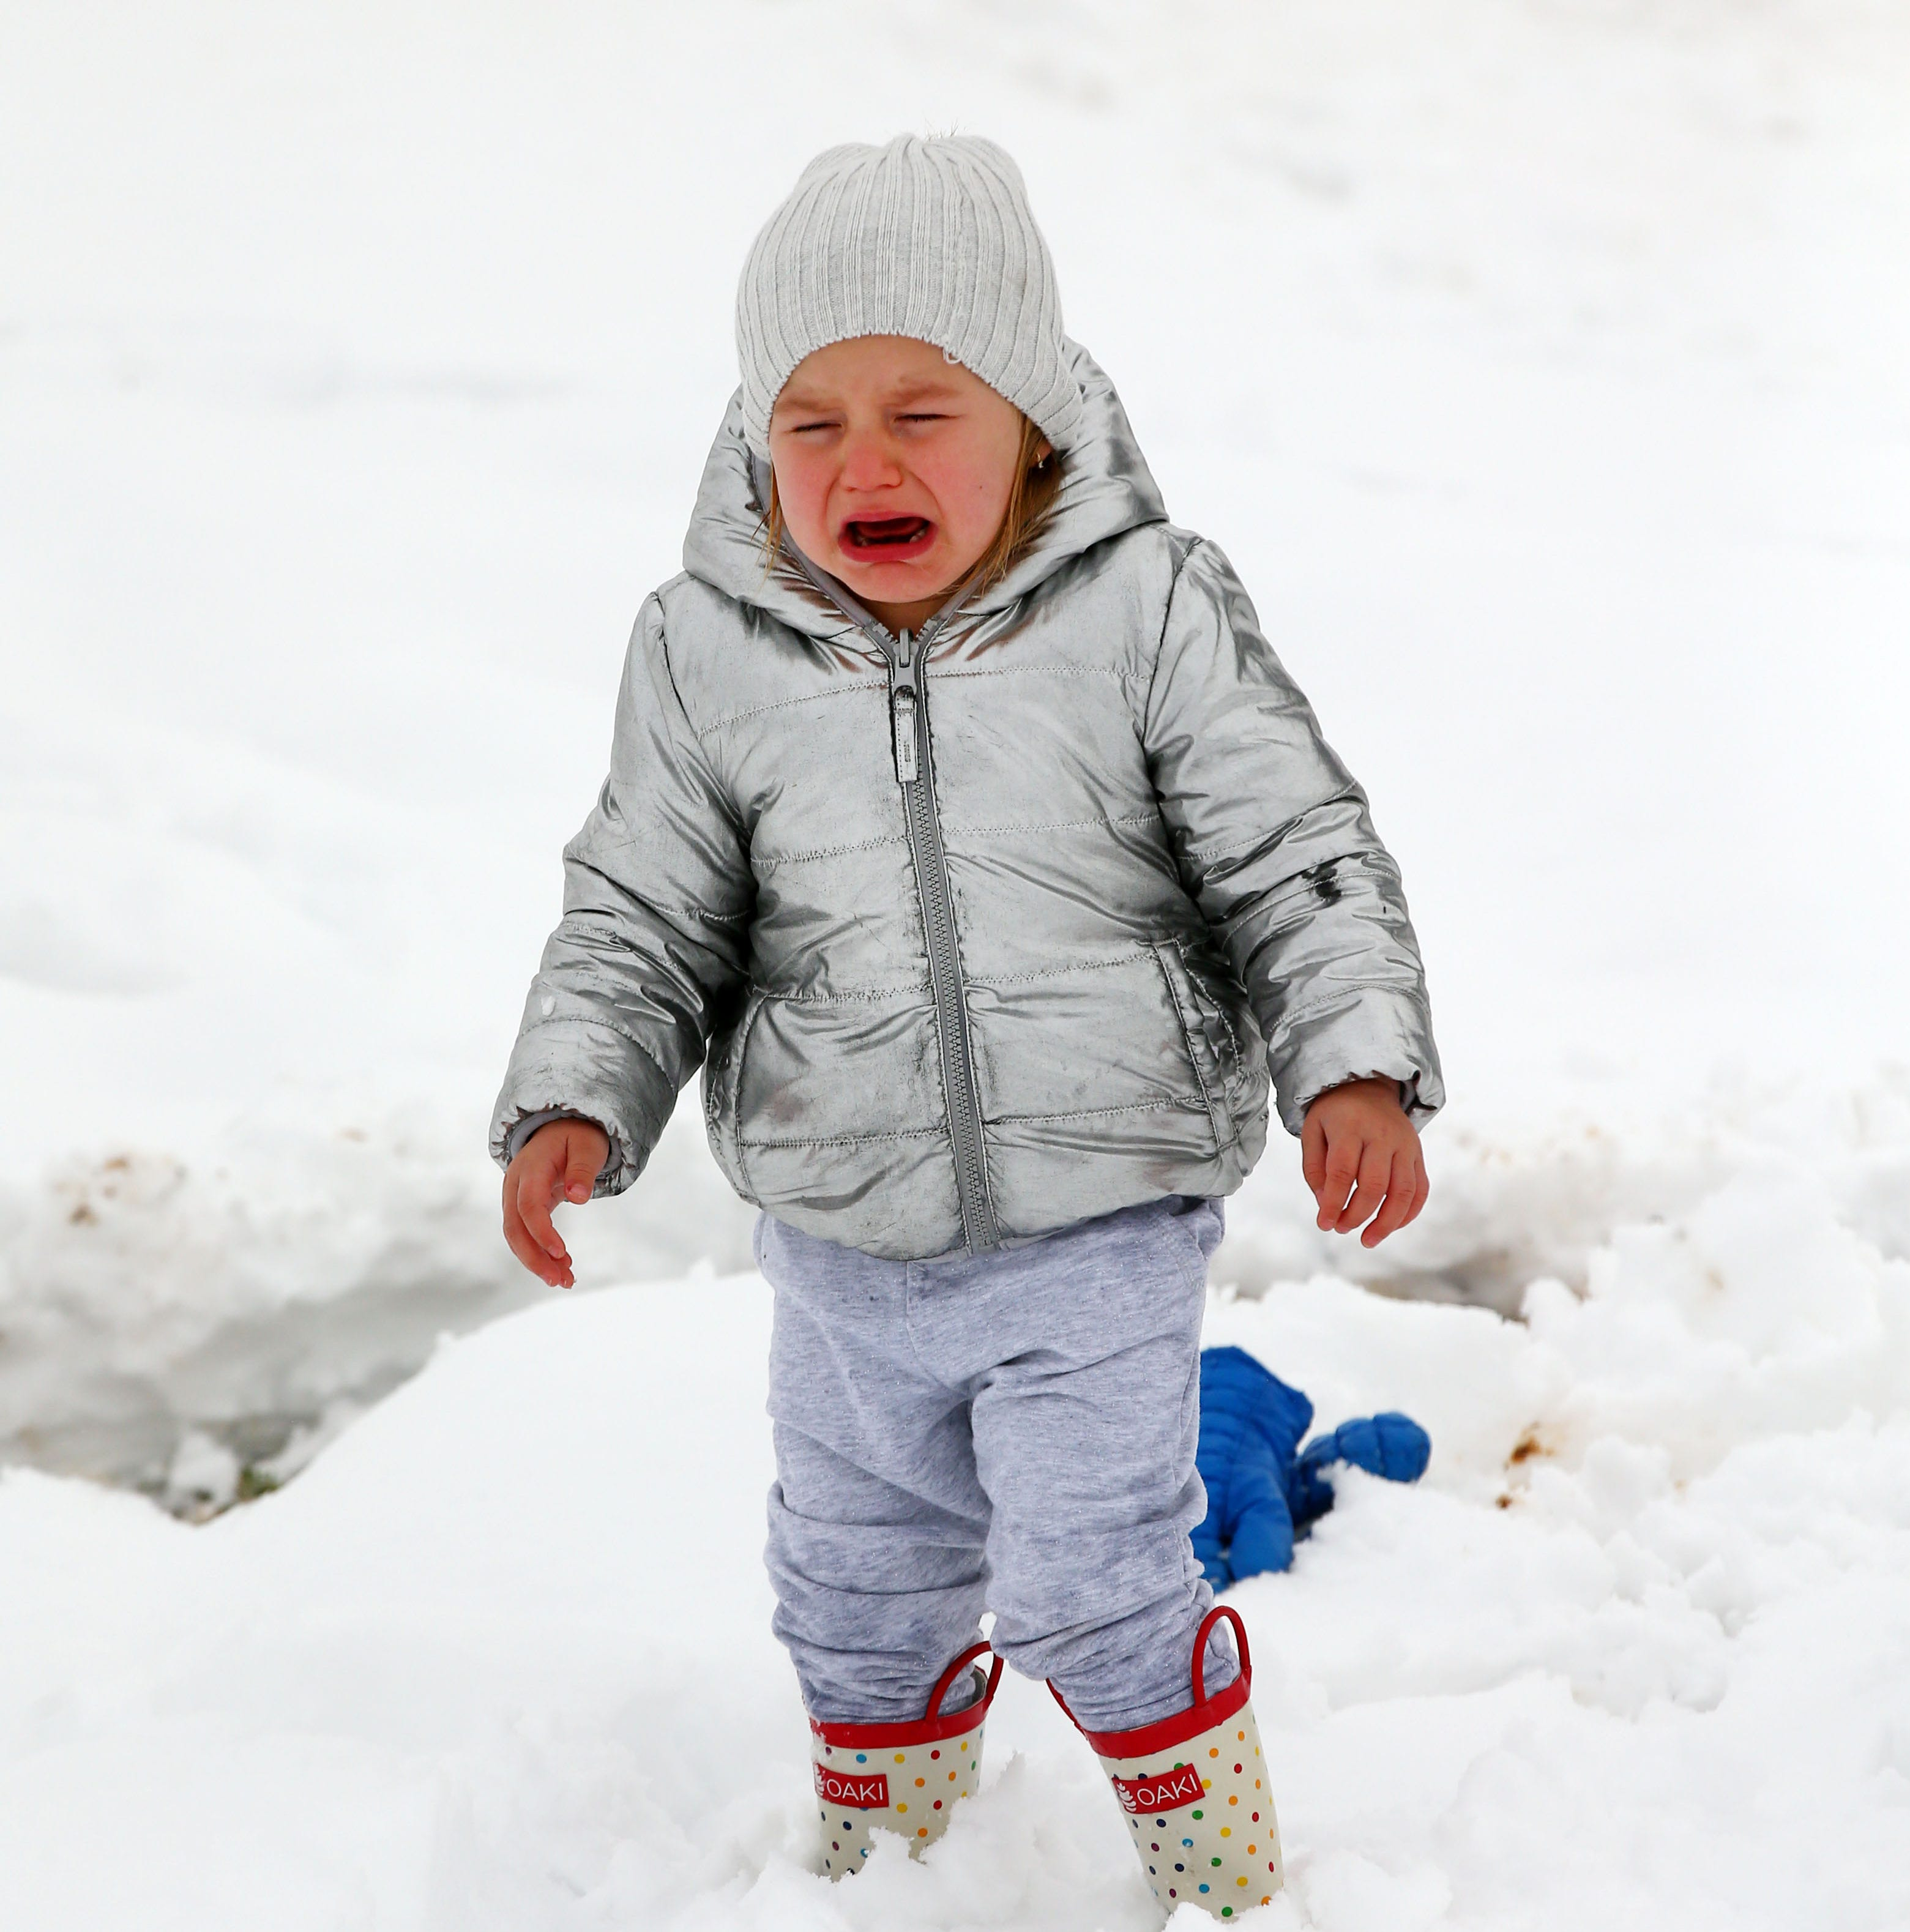 How cold is it? Phoenix shatters 122-year-old temperature record